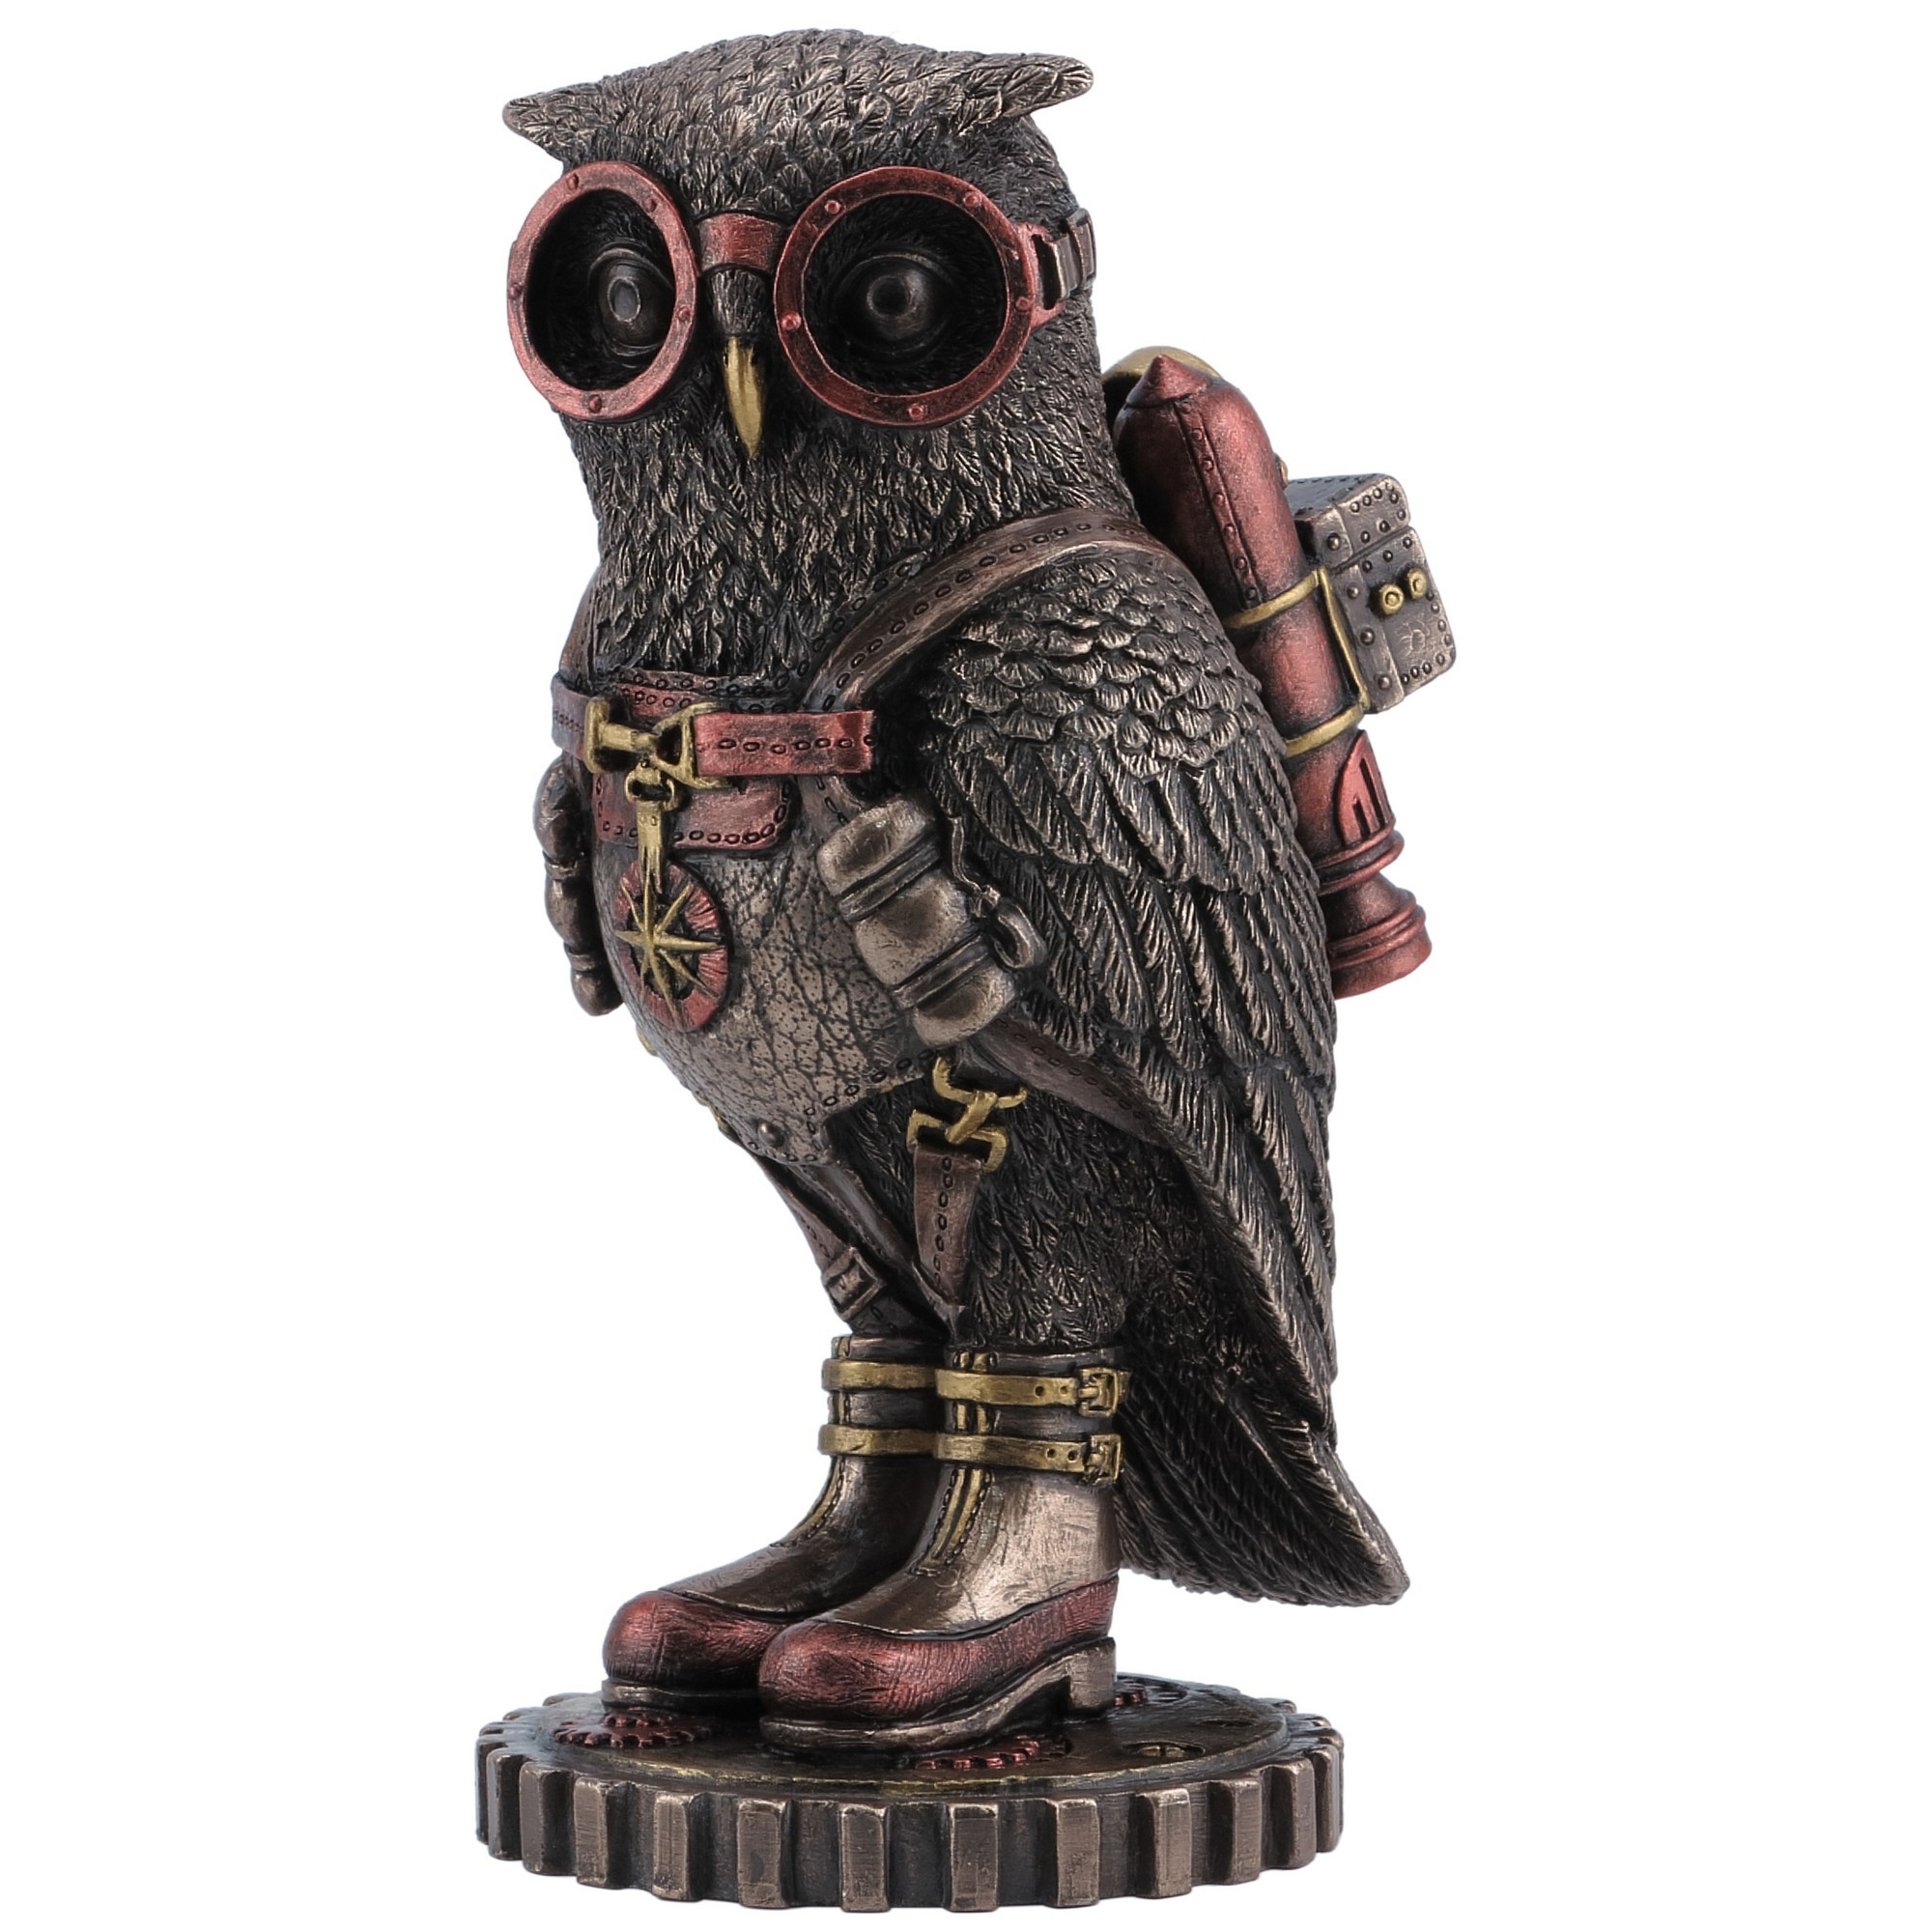 Veronese Cold Cast Bronze Coated Steampunk Statue, Owl with Jetpack